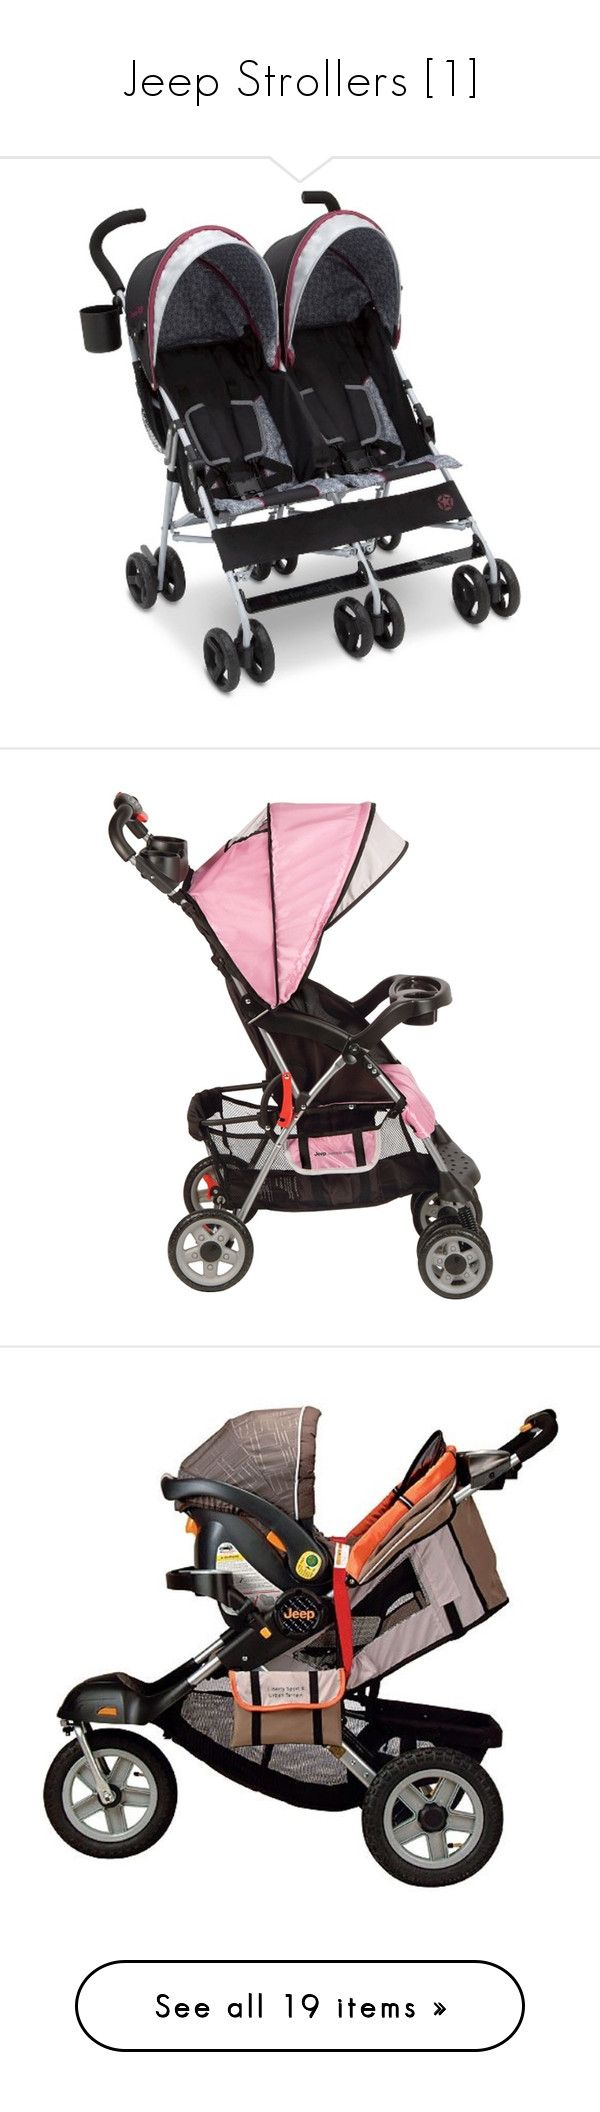 """""""Jeep Strollers [1]"""" by buildyourown ❤ liked on Polyvore"""